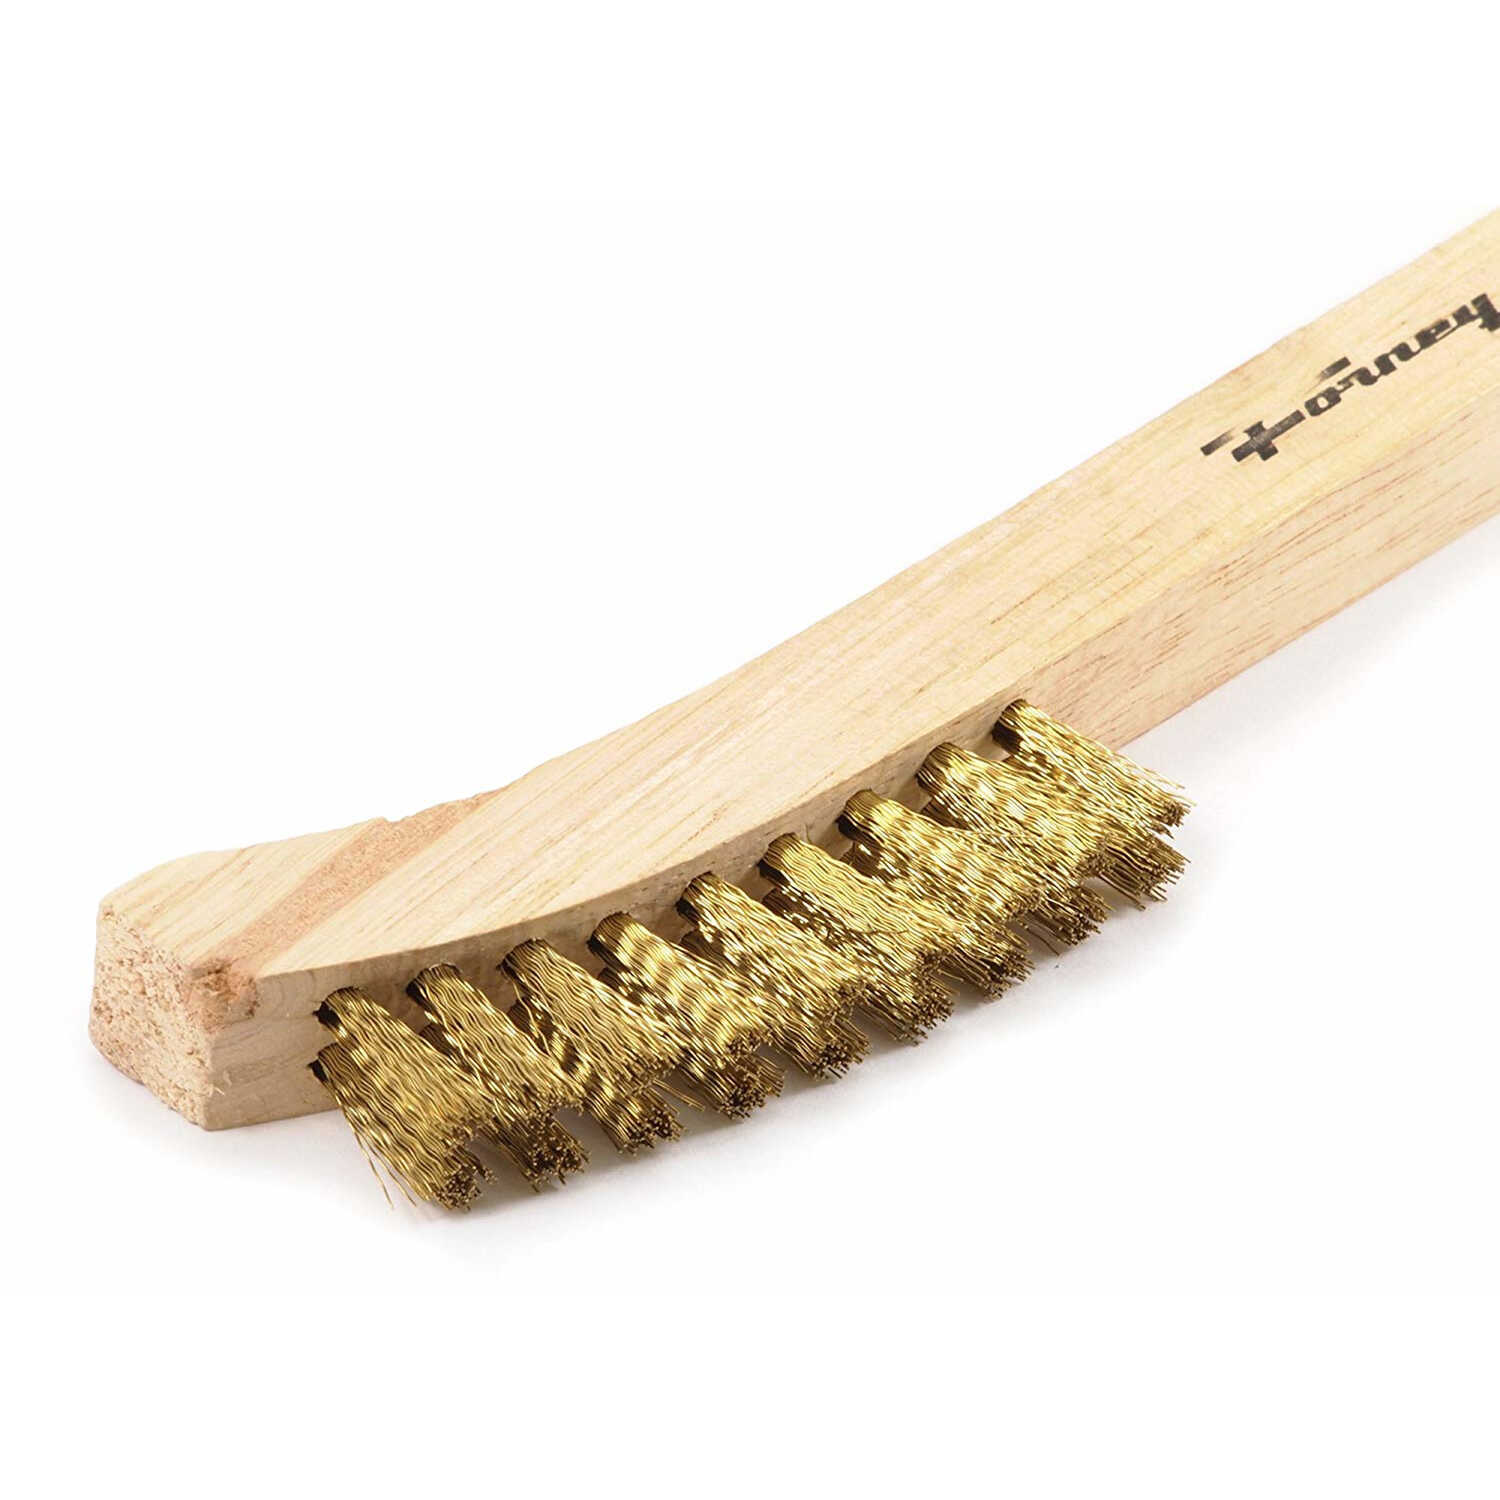 Forney  8-5/8 in. L x 1.5 in. W Scratch Brush  Wood  1 pc.